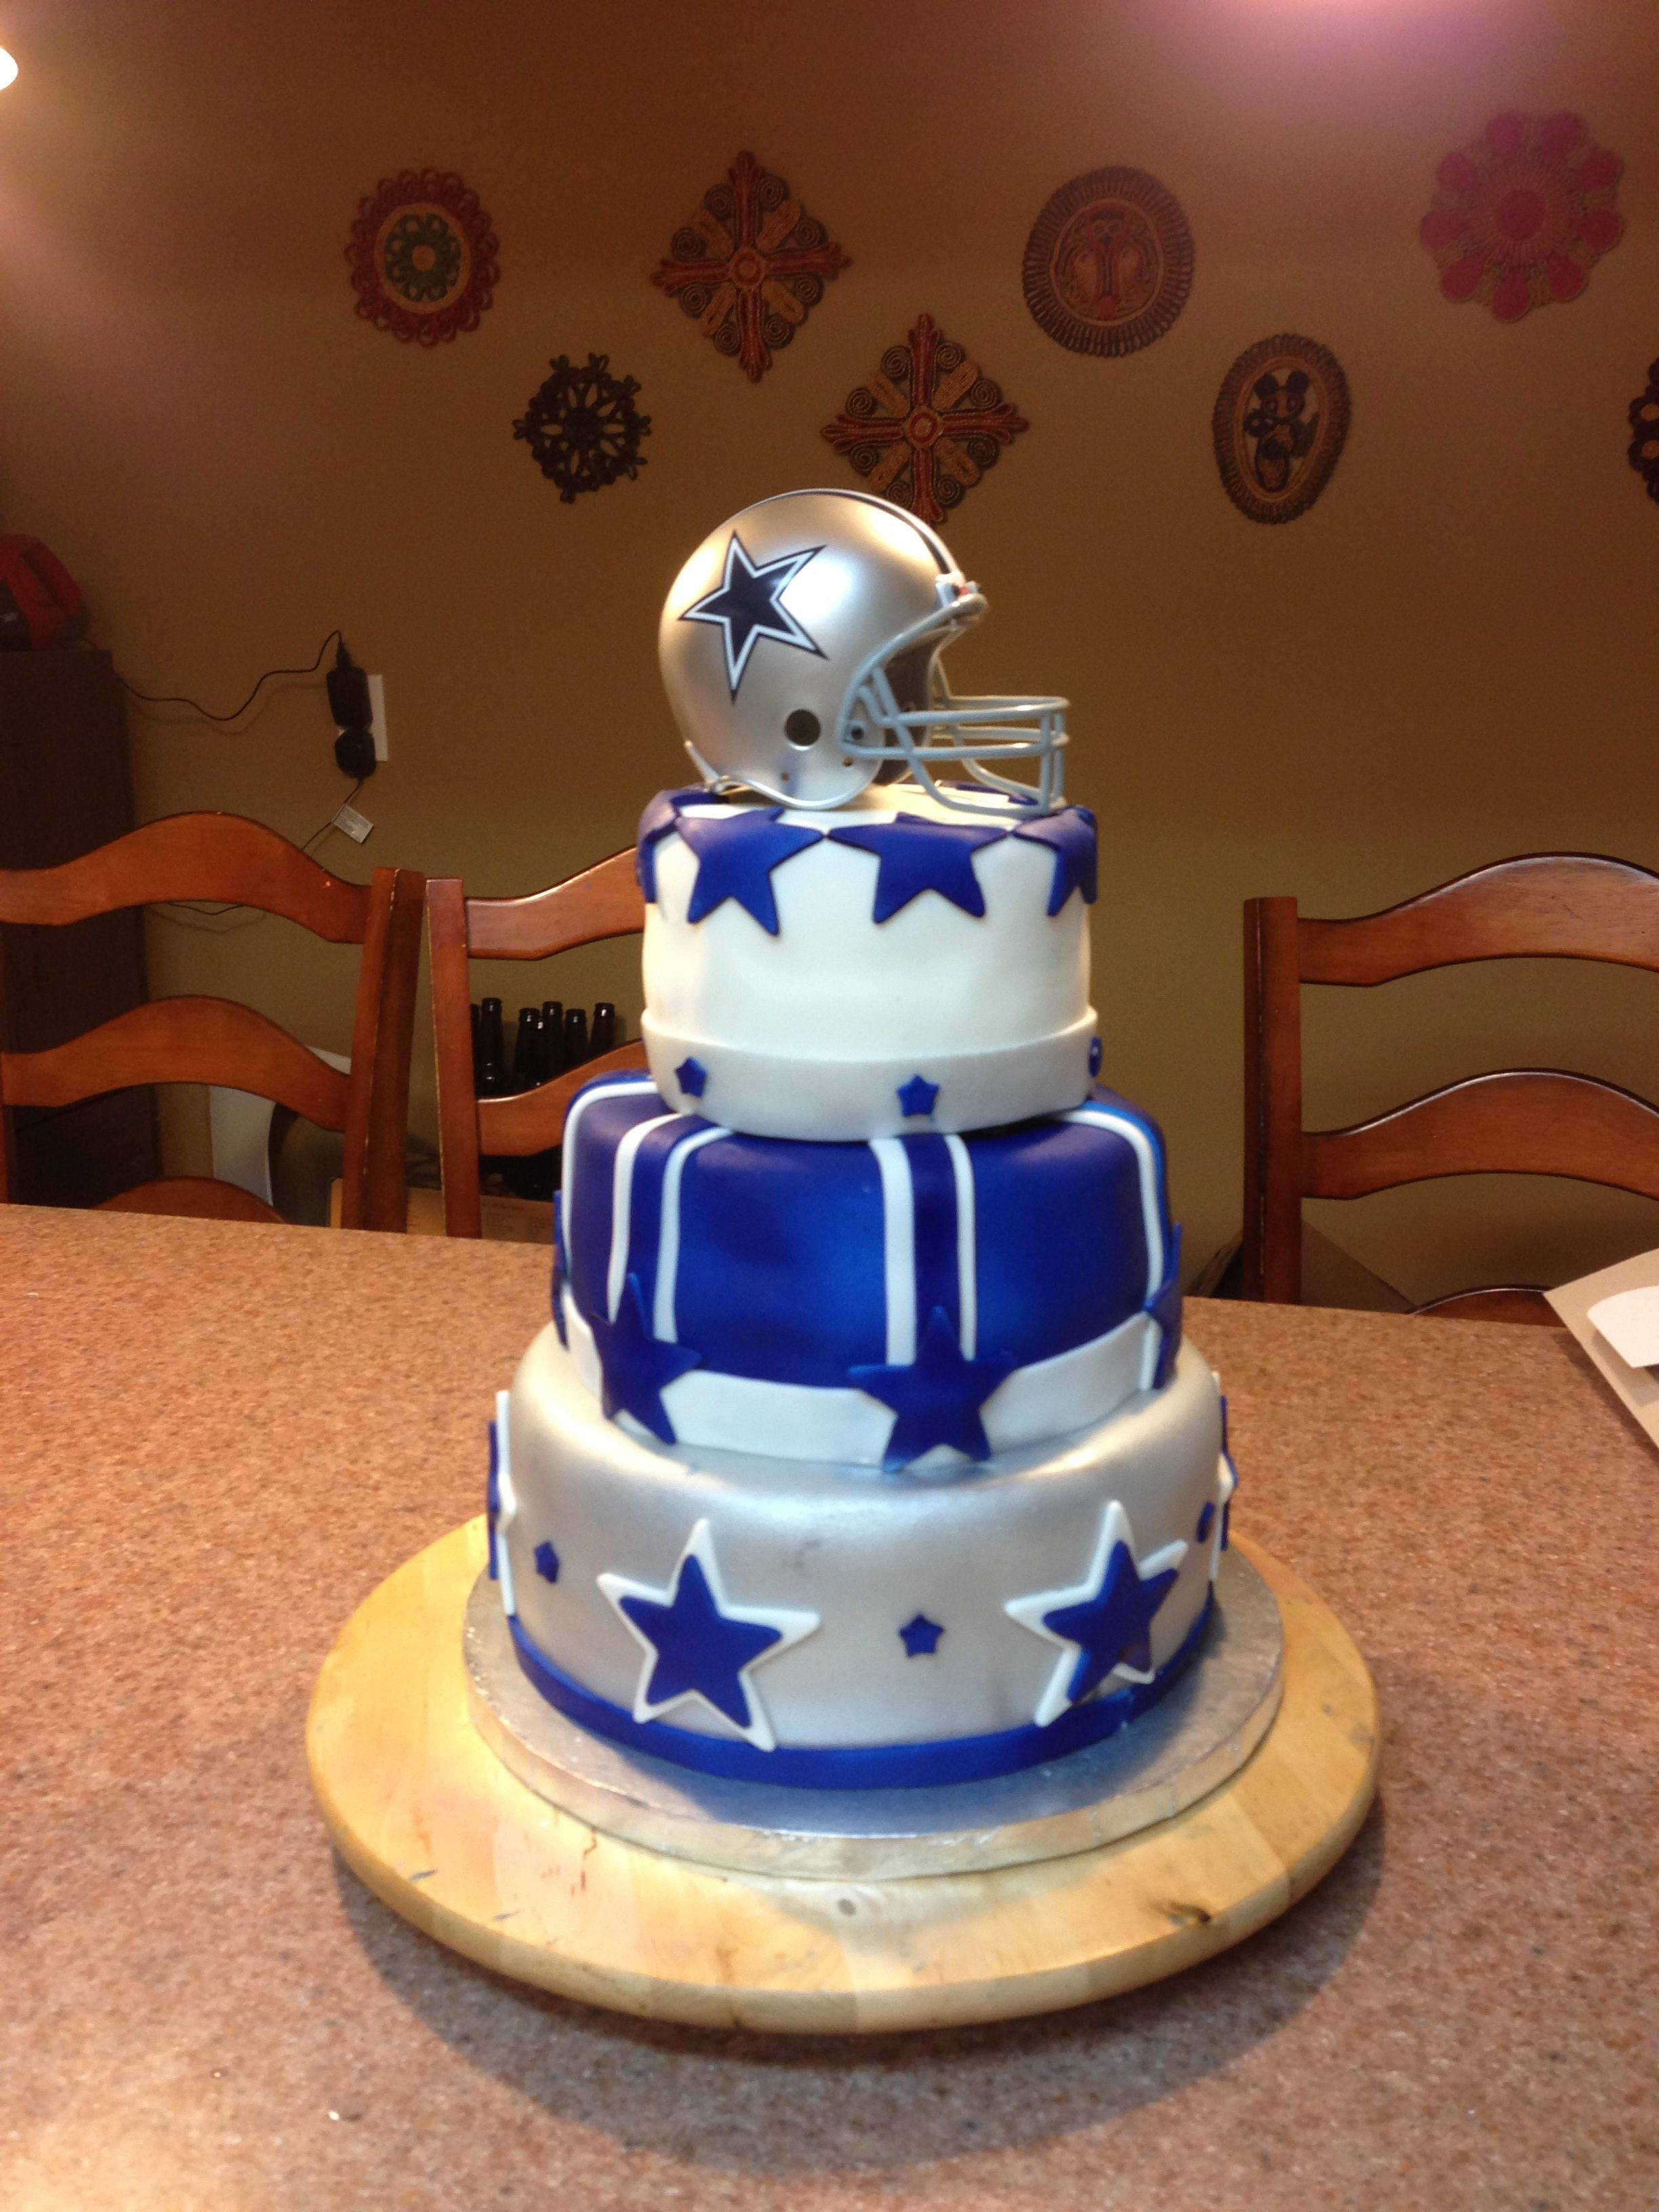 Dallas Cowboys Baby Shower Cake For Hopefully Future Ladusch Baby!